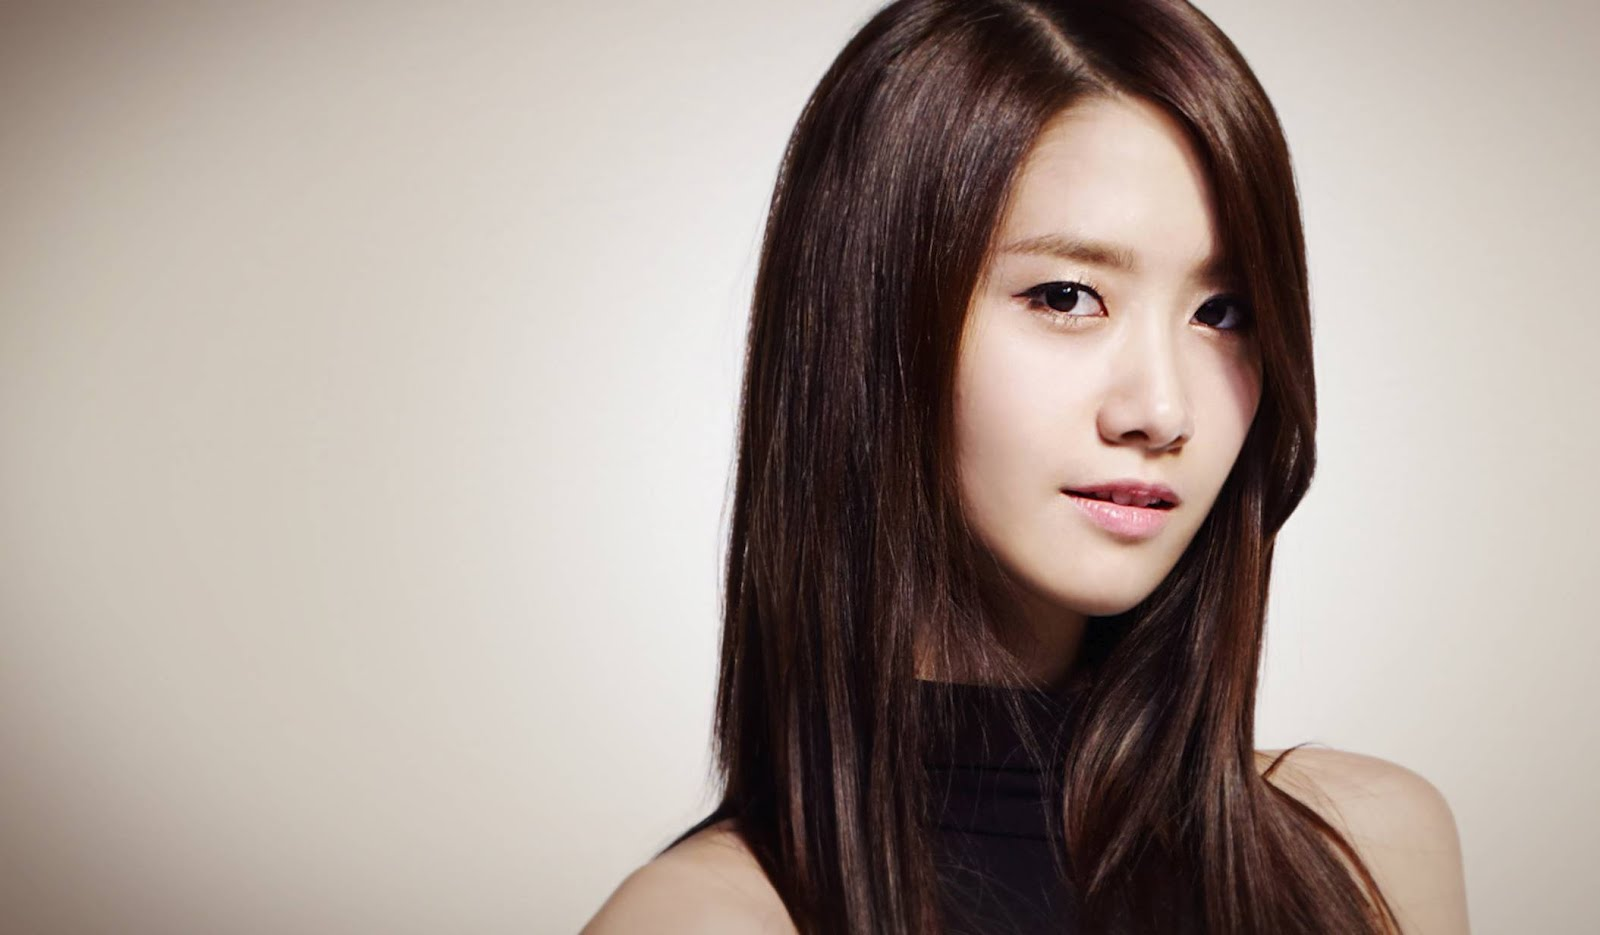 Girls39; Generation Yoona